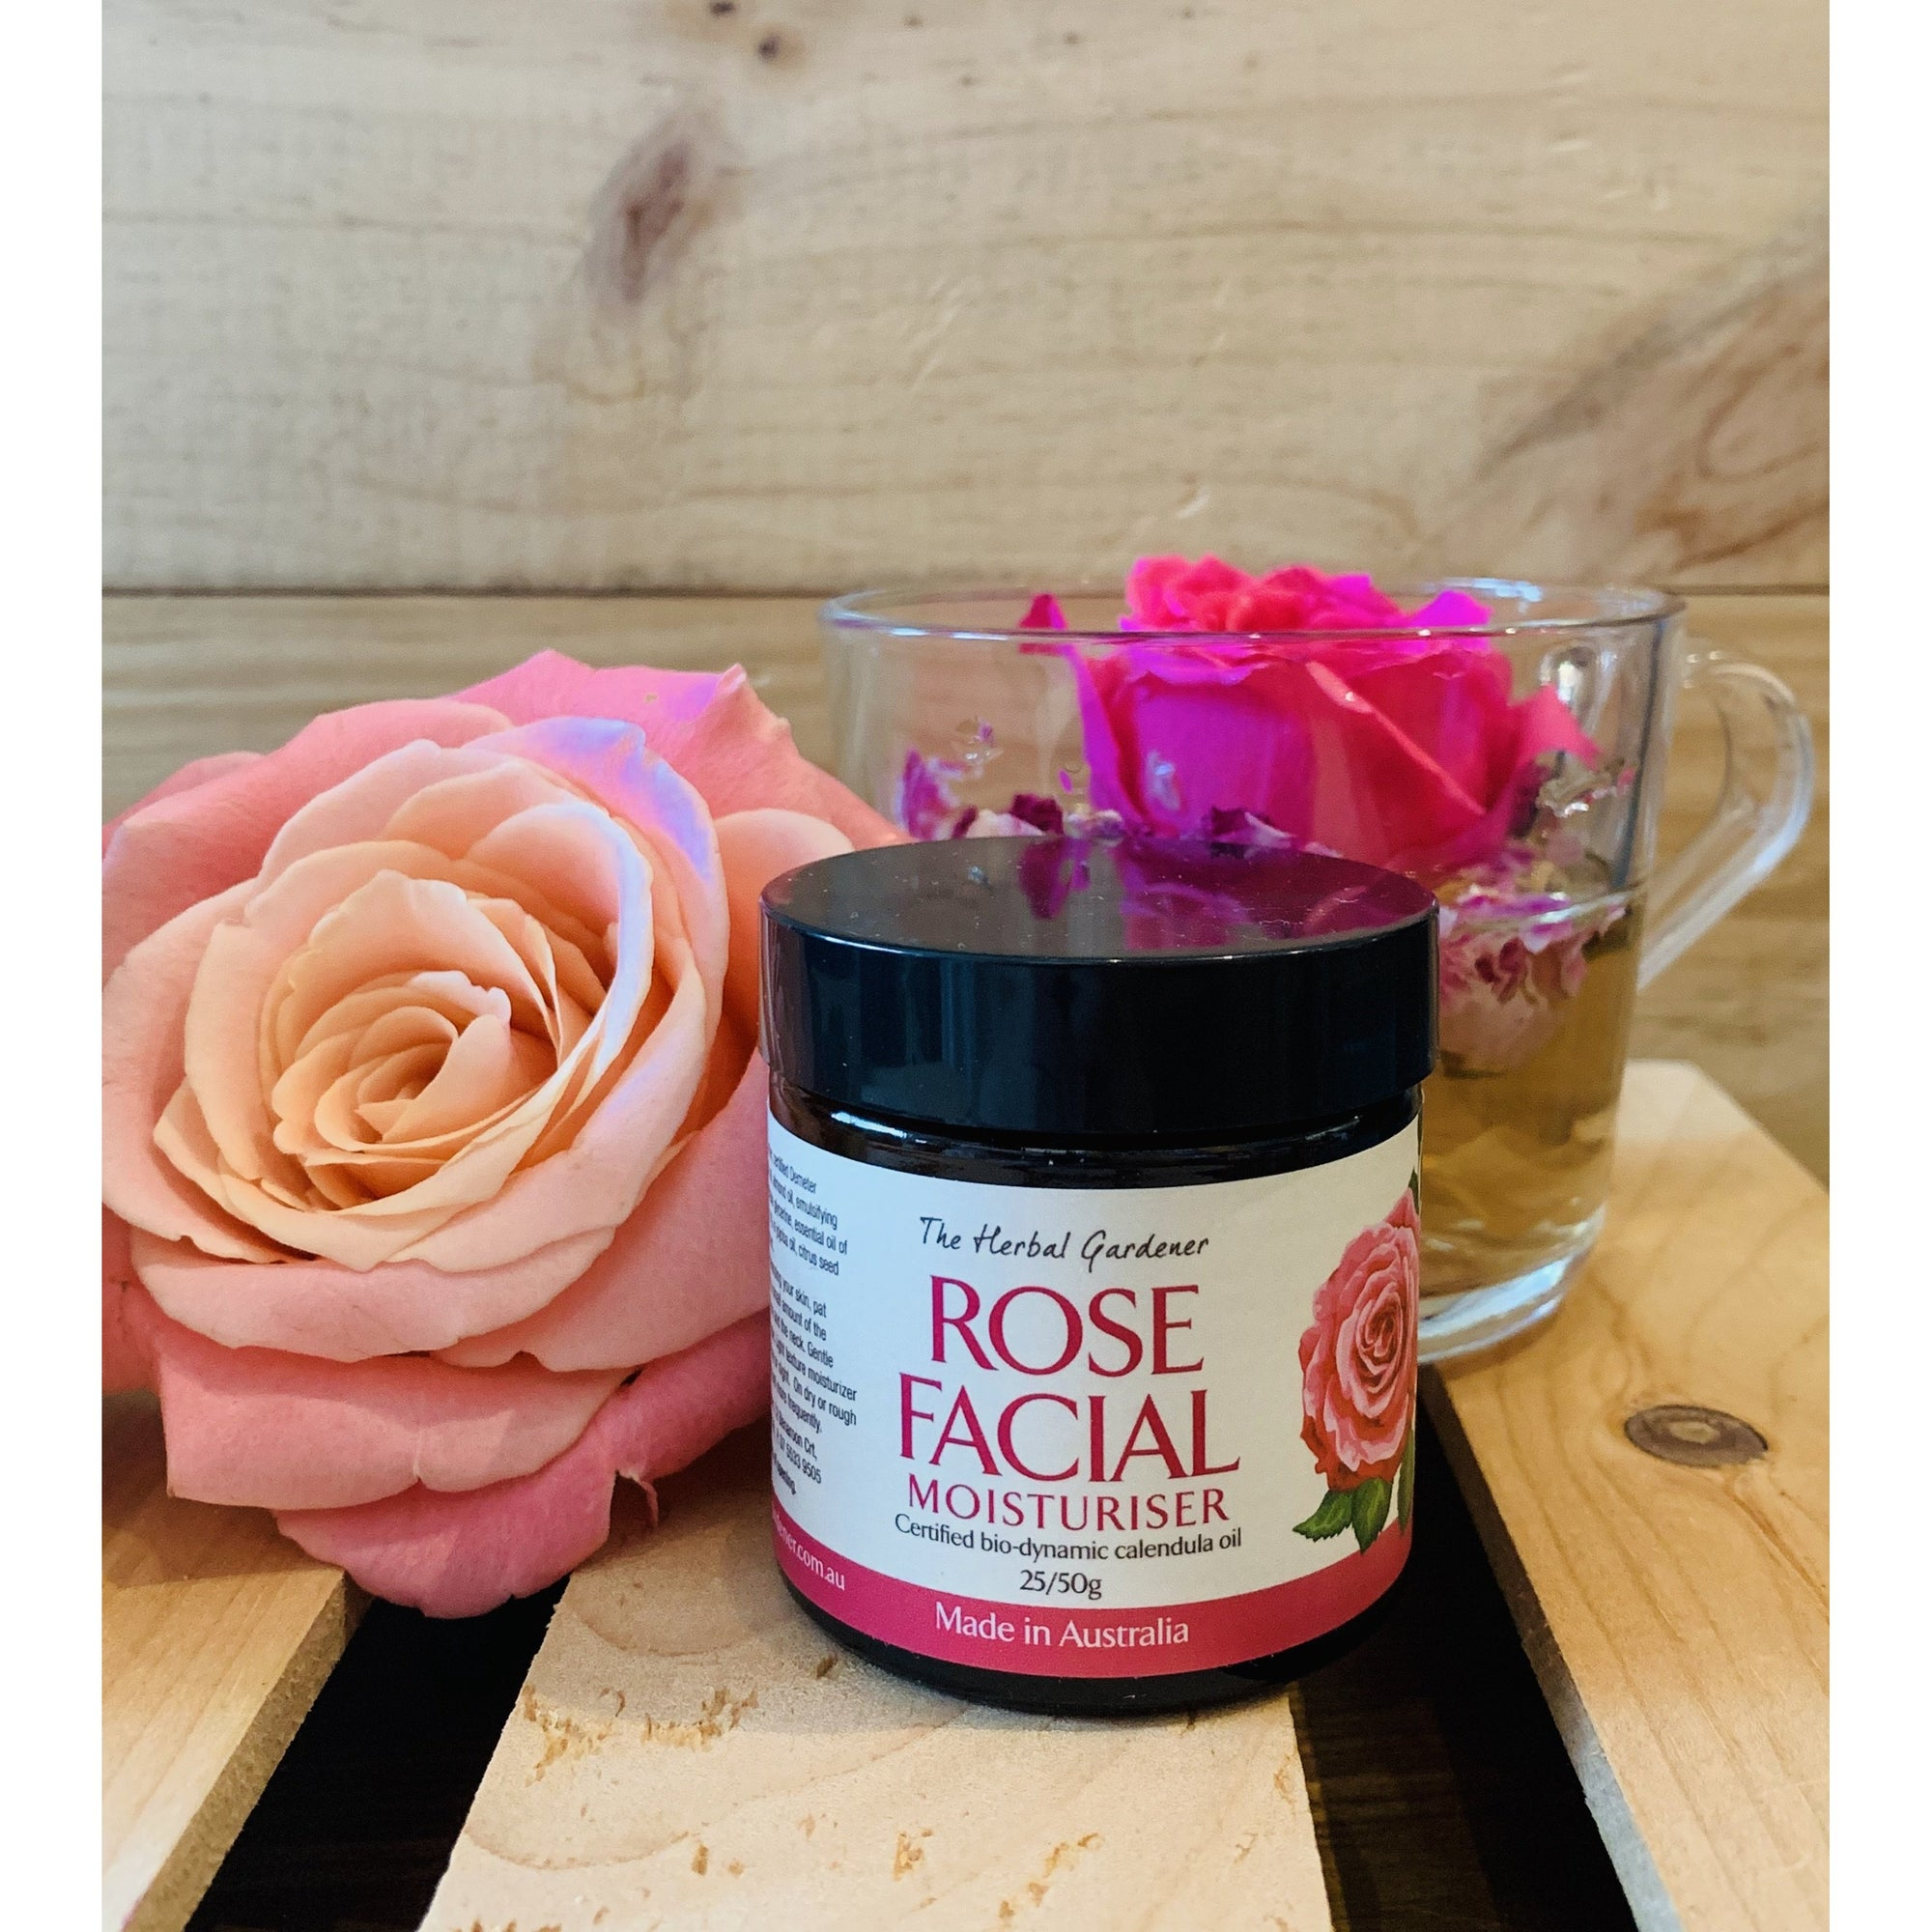 The Herbal Gardener Rose Facial Moisturiser 25g